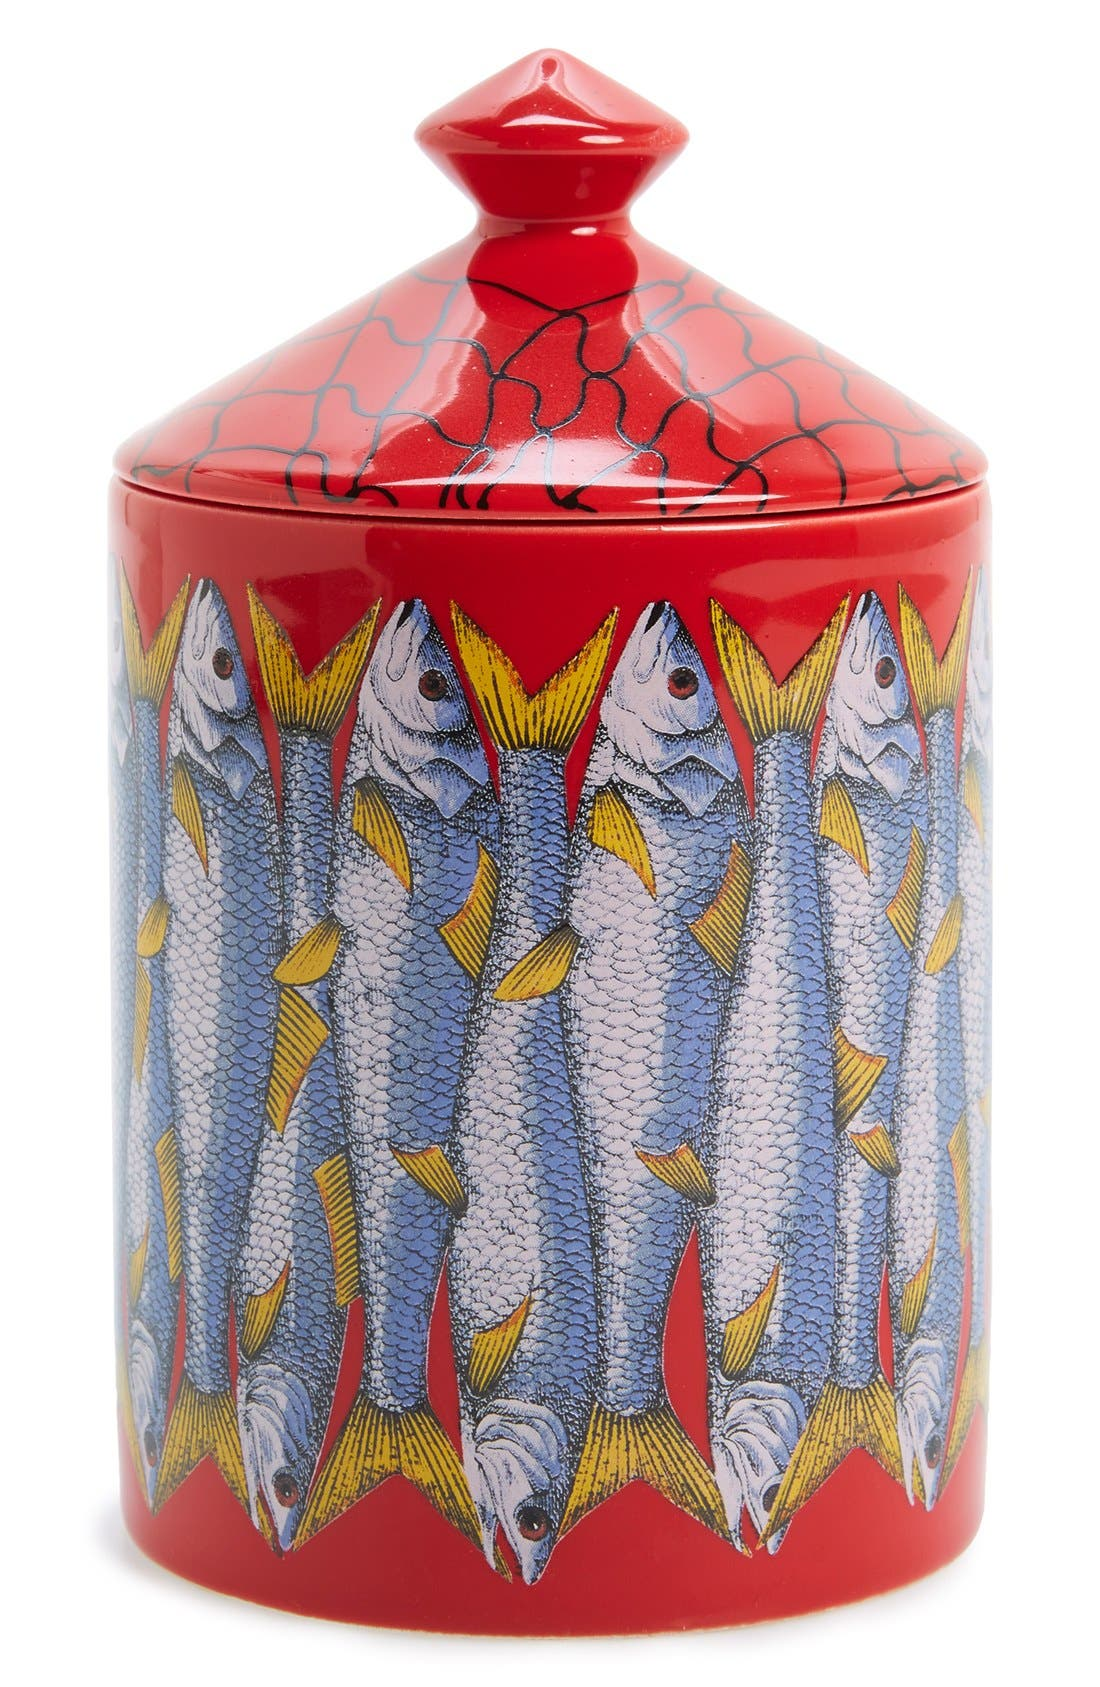 Alternate Image 1 Selected - Fornasetti 'Sardine Rosso' Lidded Candle